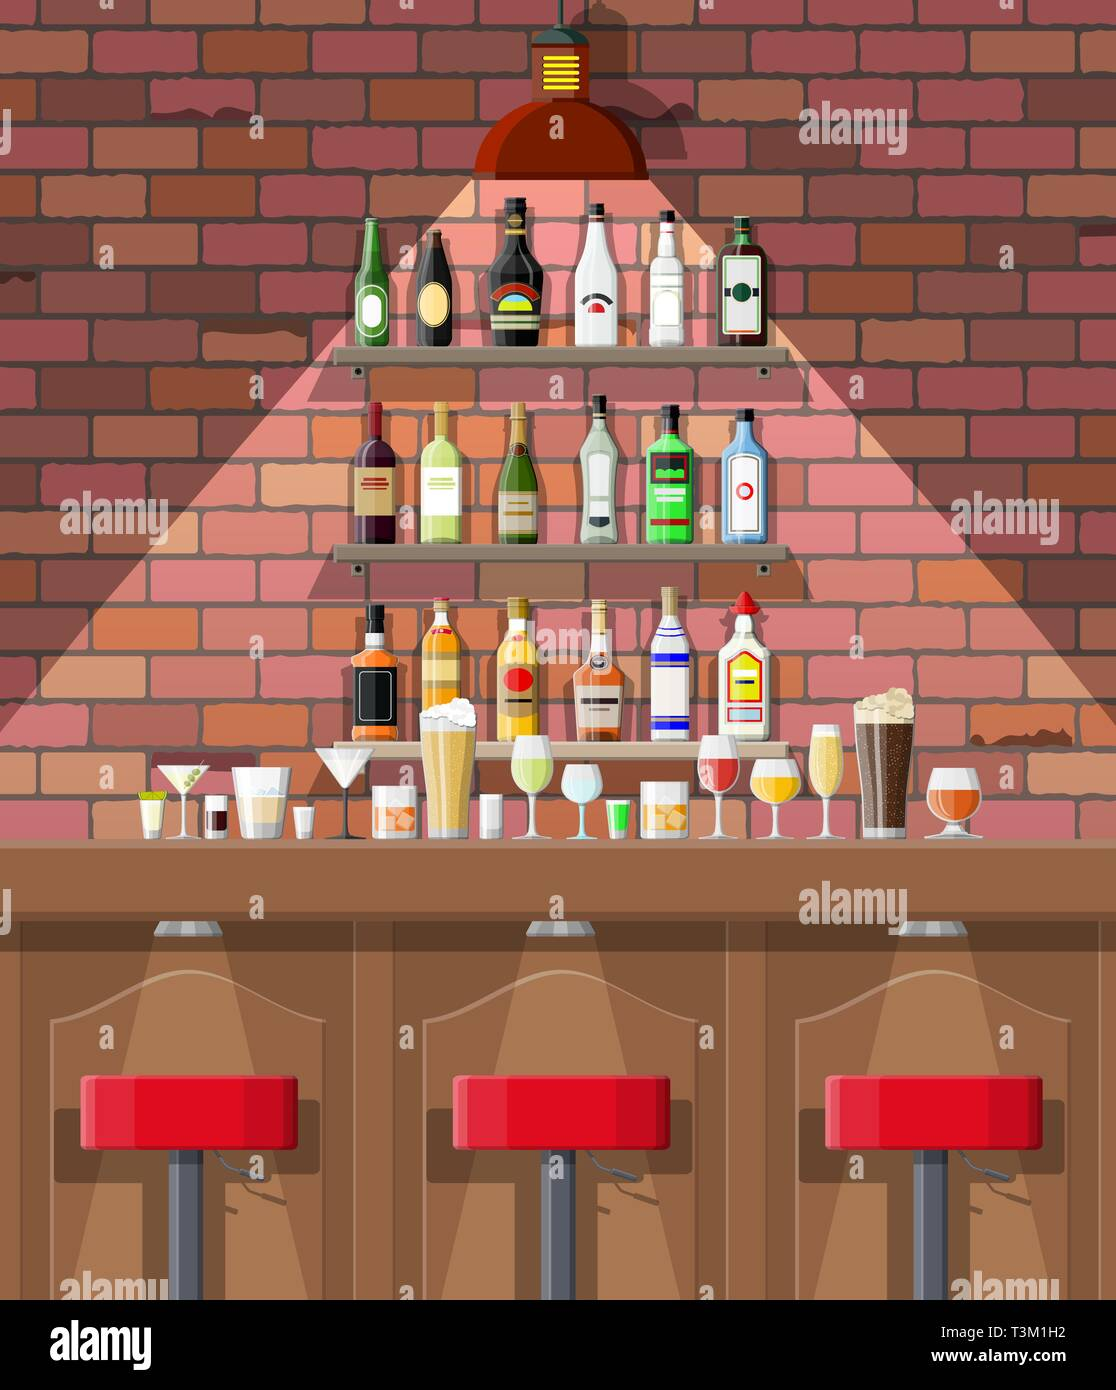 Drinking establishment. Interior of pub, cafe or bar. Bar counter, chairs and shelves with alcohol bottles. Glasses and lamp. Wooden and brick decor.  Stock Vector